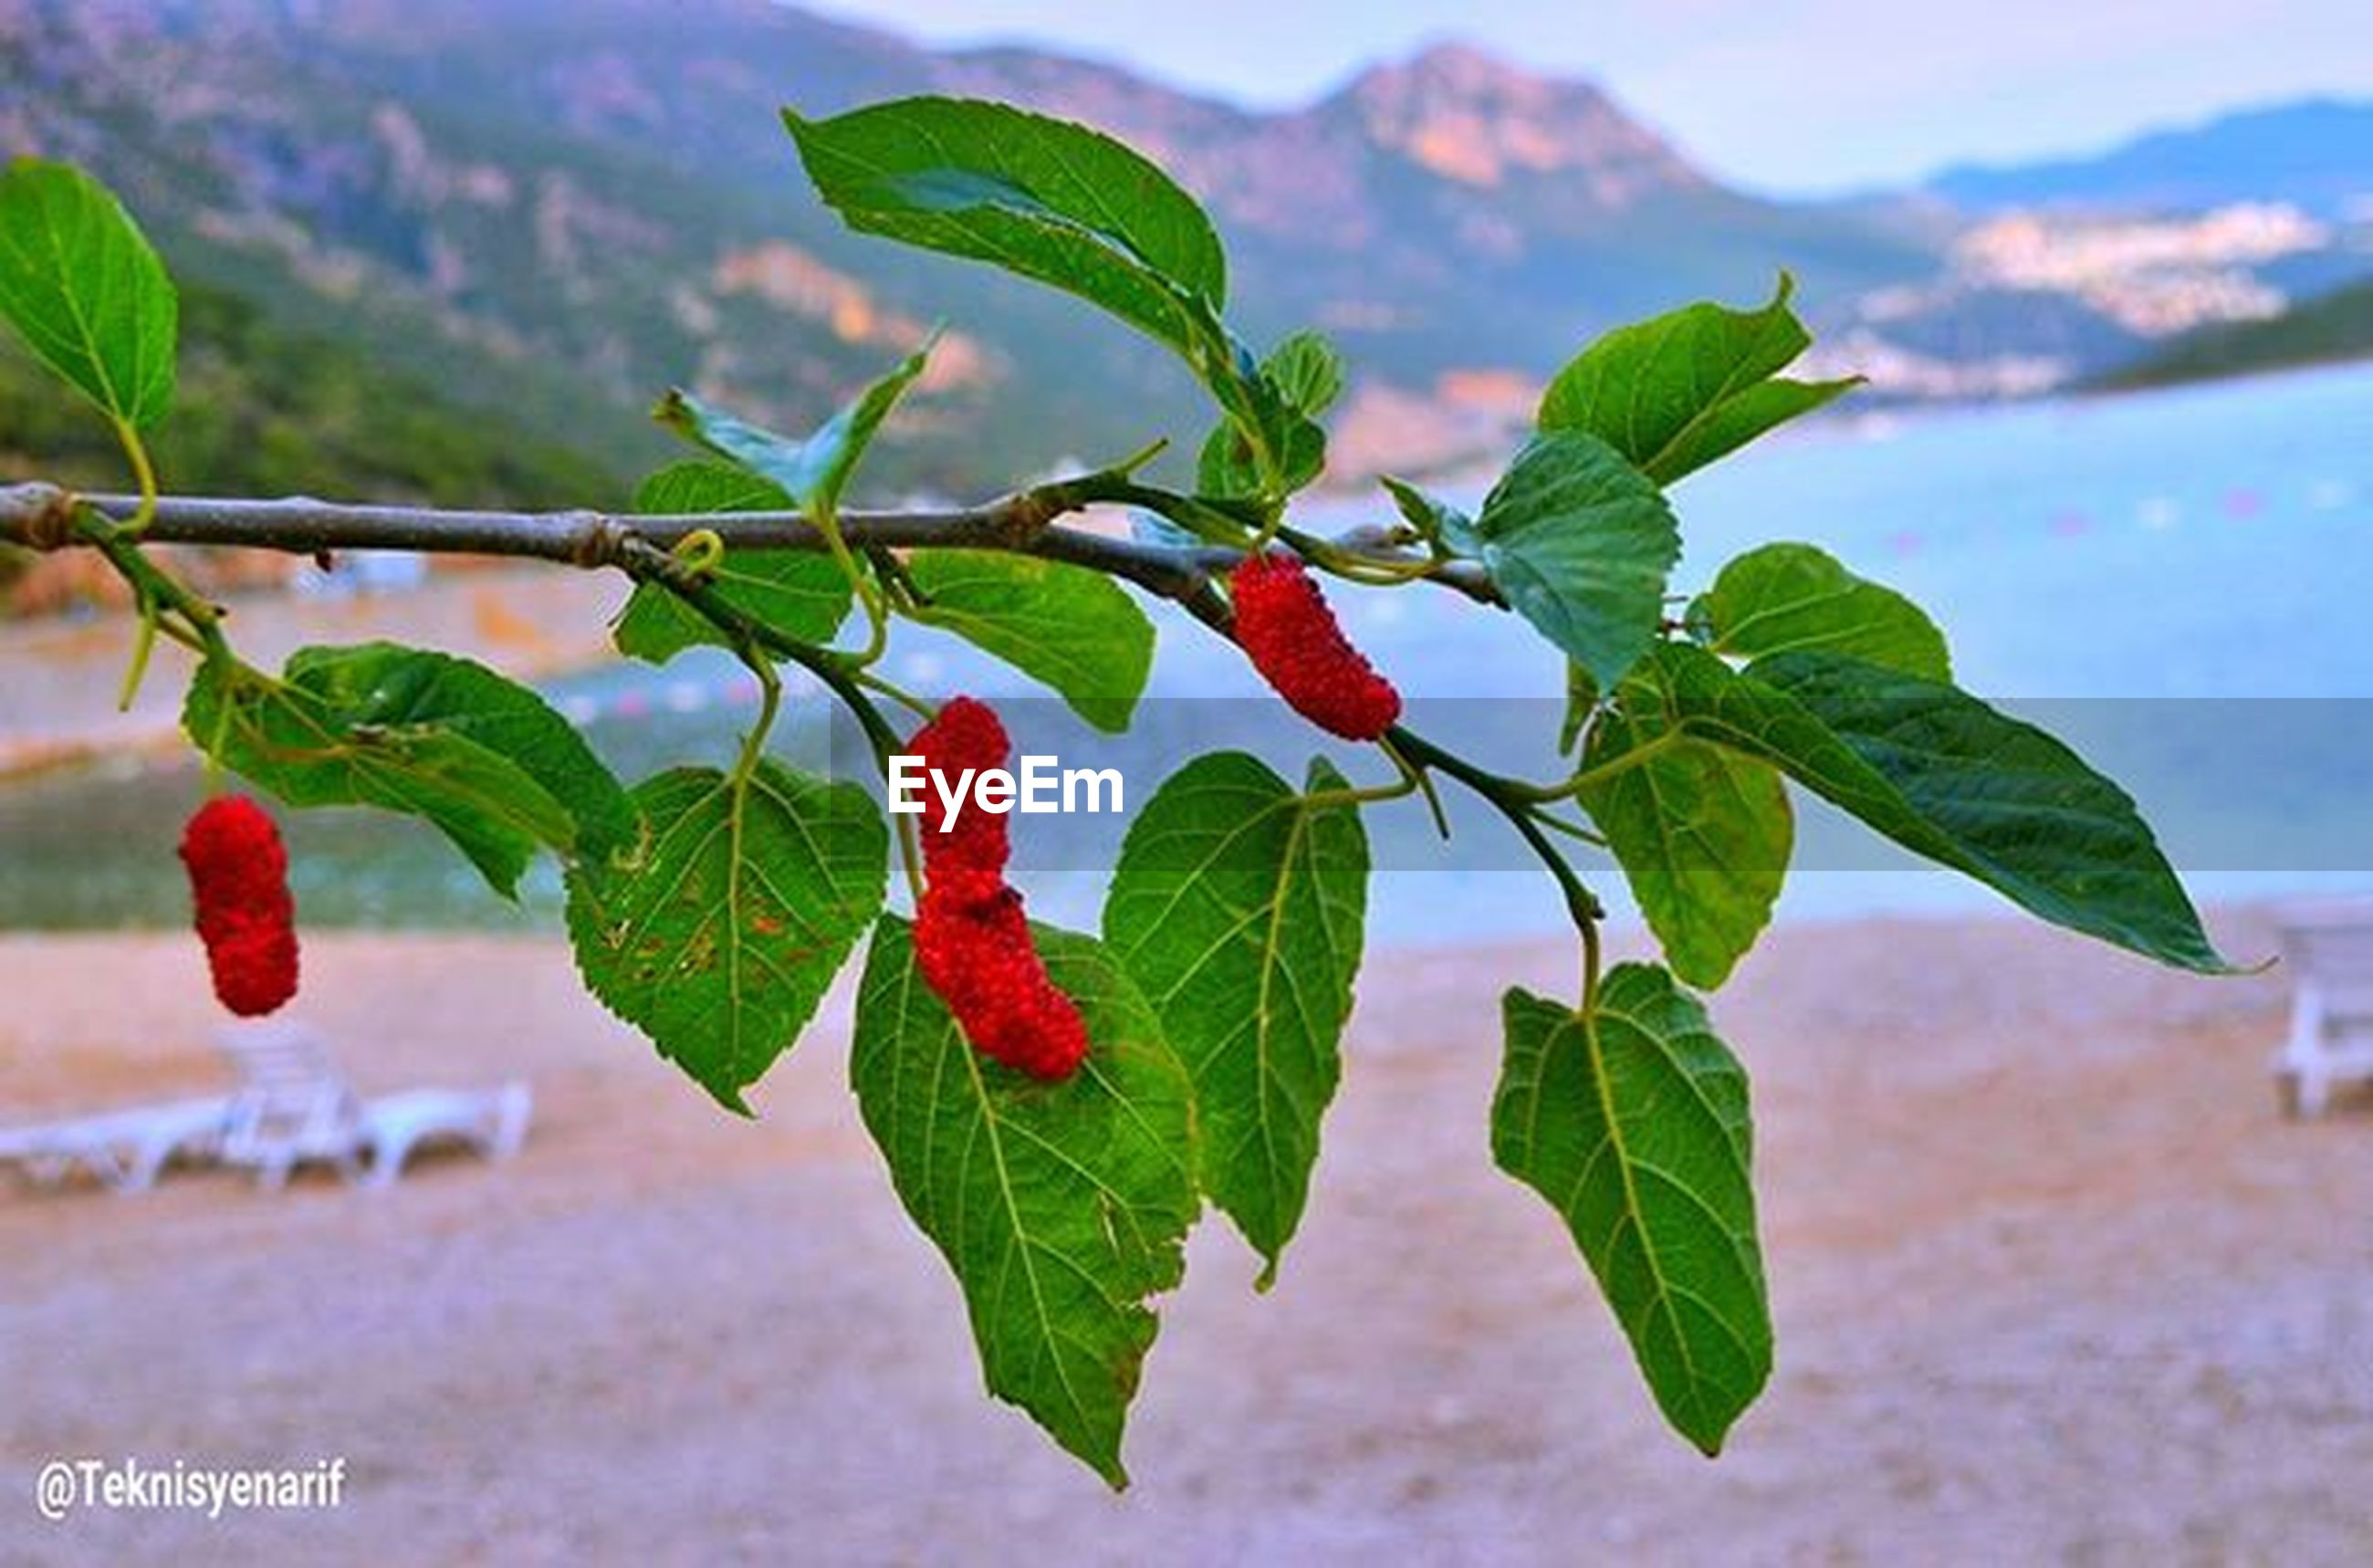 leaf, growth, focus on foreground, close-up, red, plant, freshness, nature, green color, beauty in nature, sky, growing, day, selective focus, stem, outdoors, no people, bud, fragility, flower